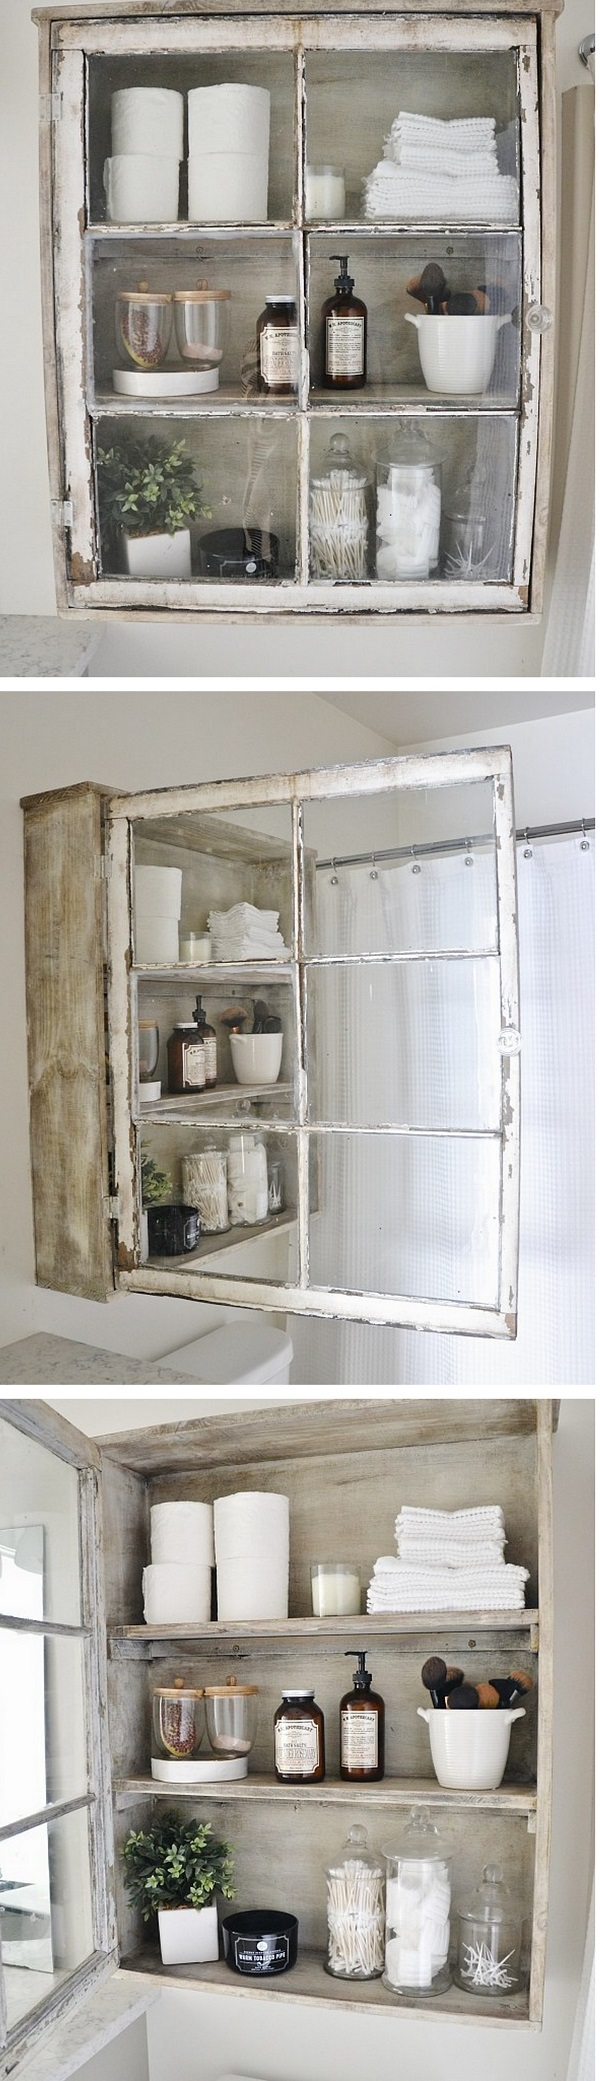 Check out how to build a DIY bathroom cabinet from an old window